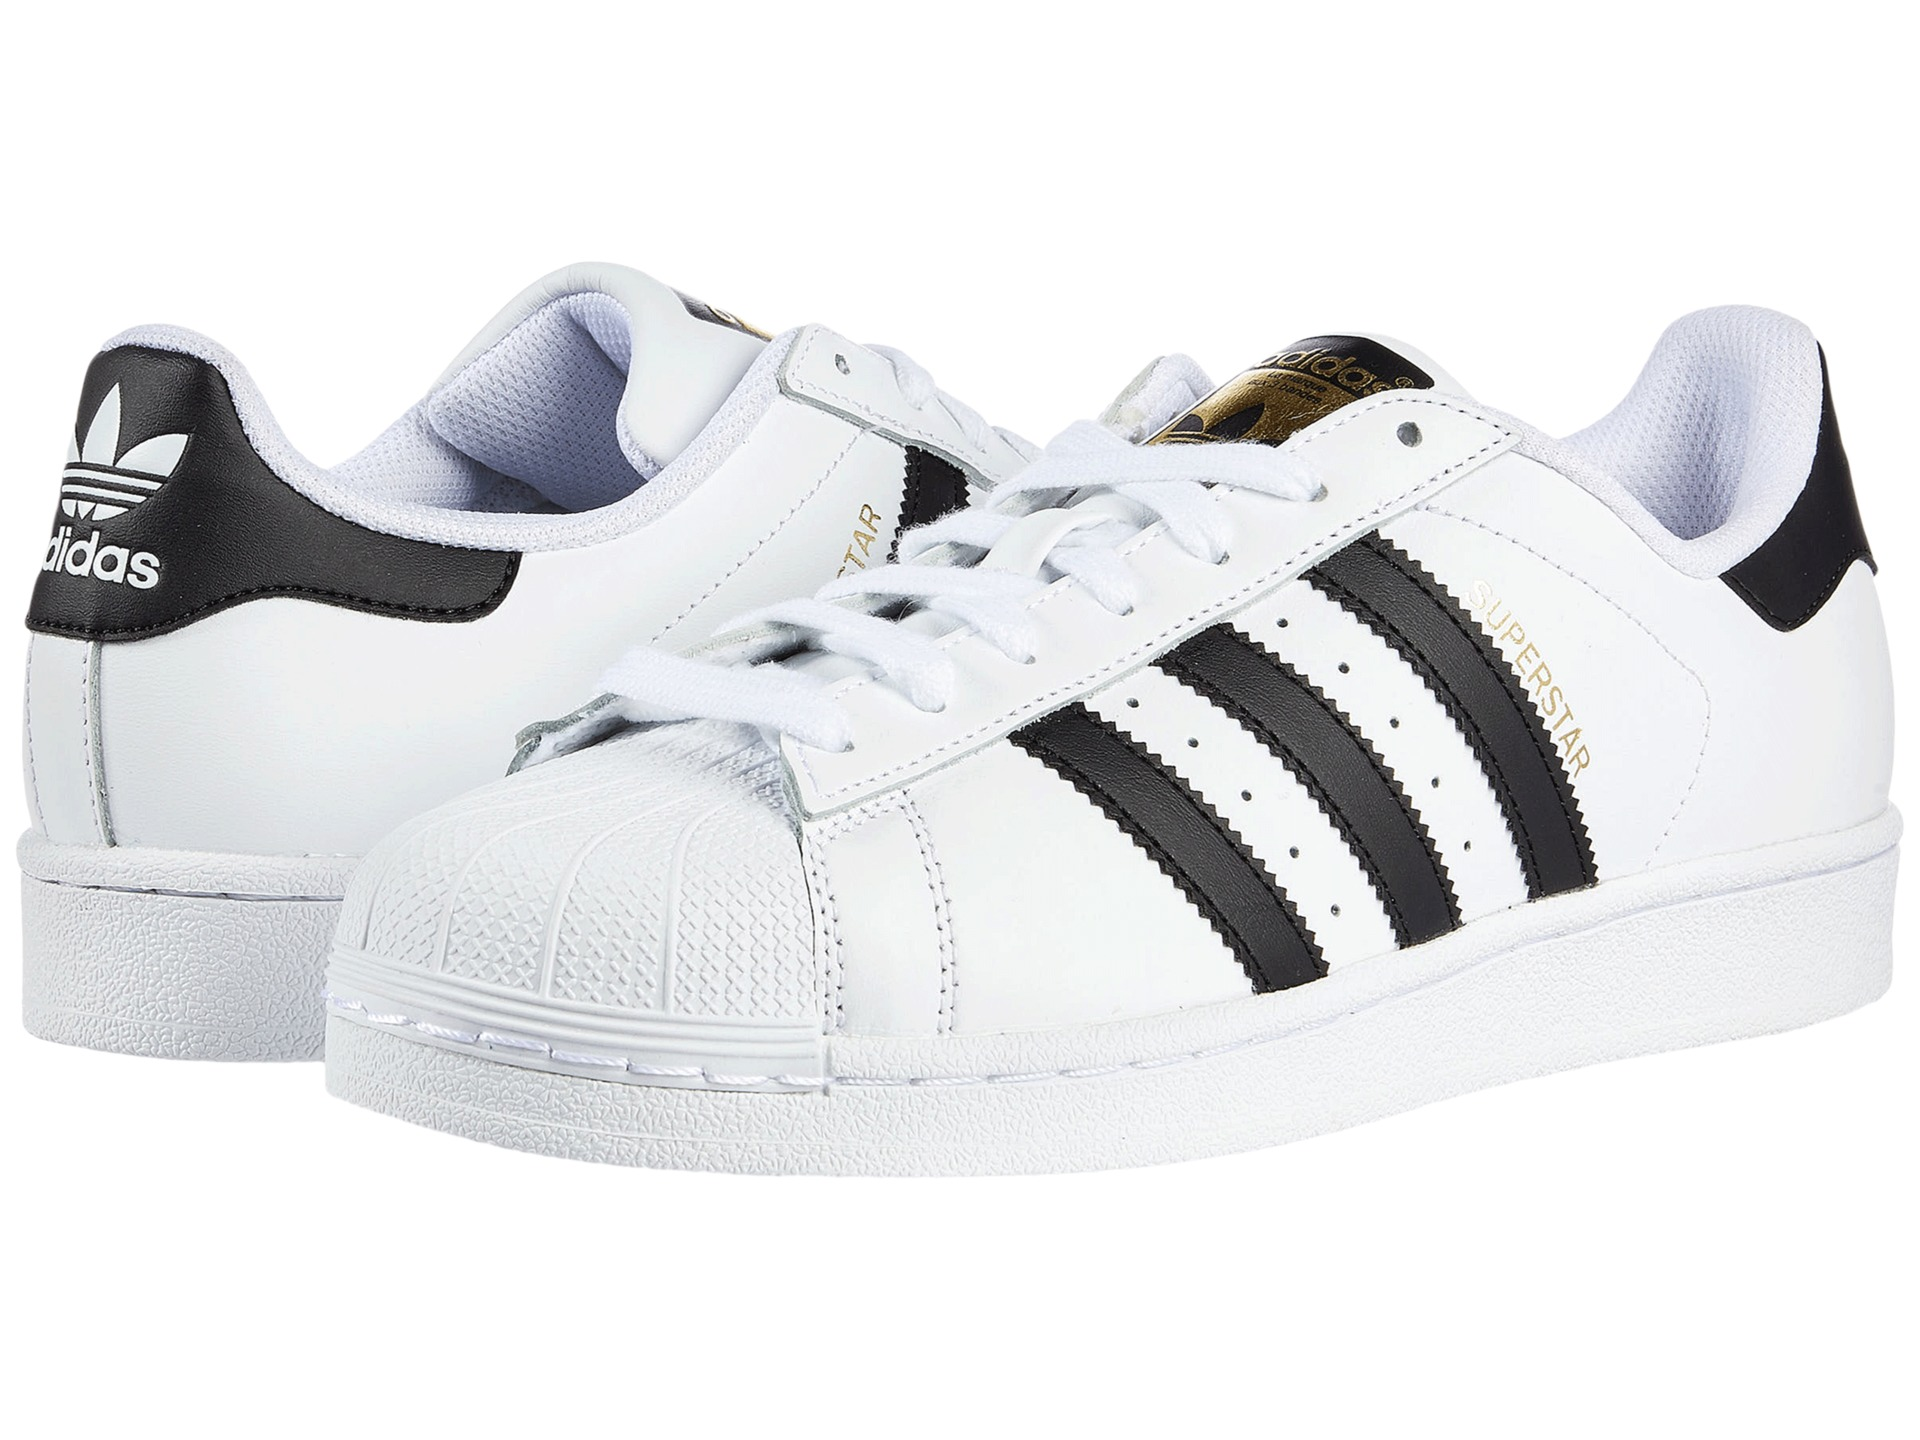 adidas Skate Introduces the Superstar ADV cheap celesio.co.uk